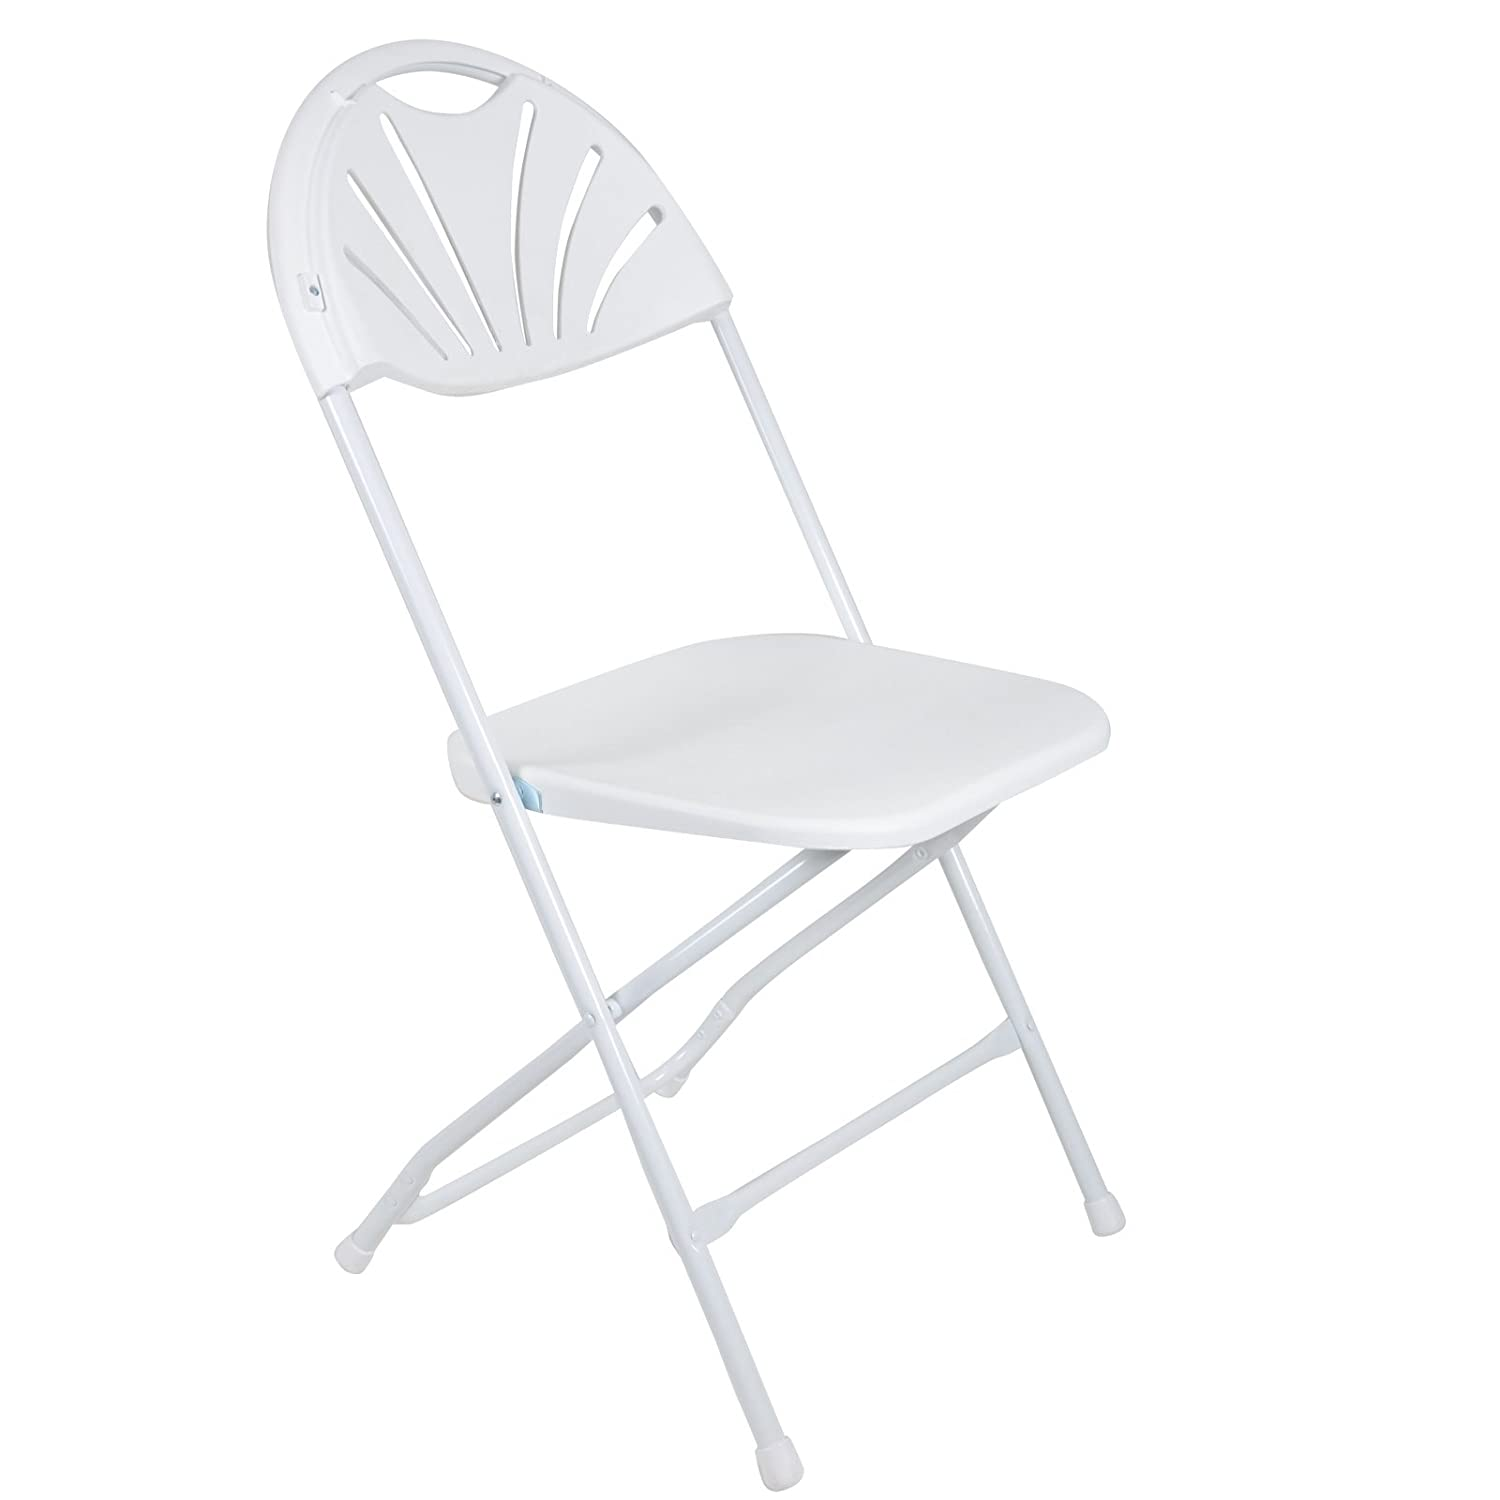 Azuma 2 x Quality Folding Indoor Outdoor Events Banquet/Garden Chairs White Sunrise